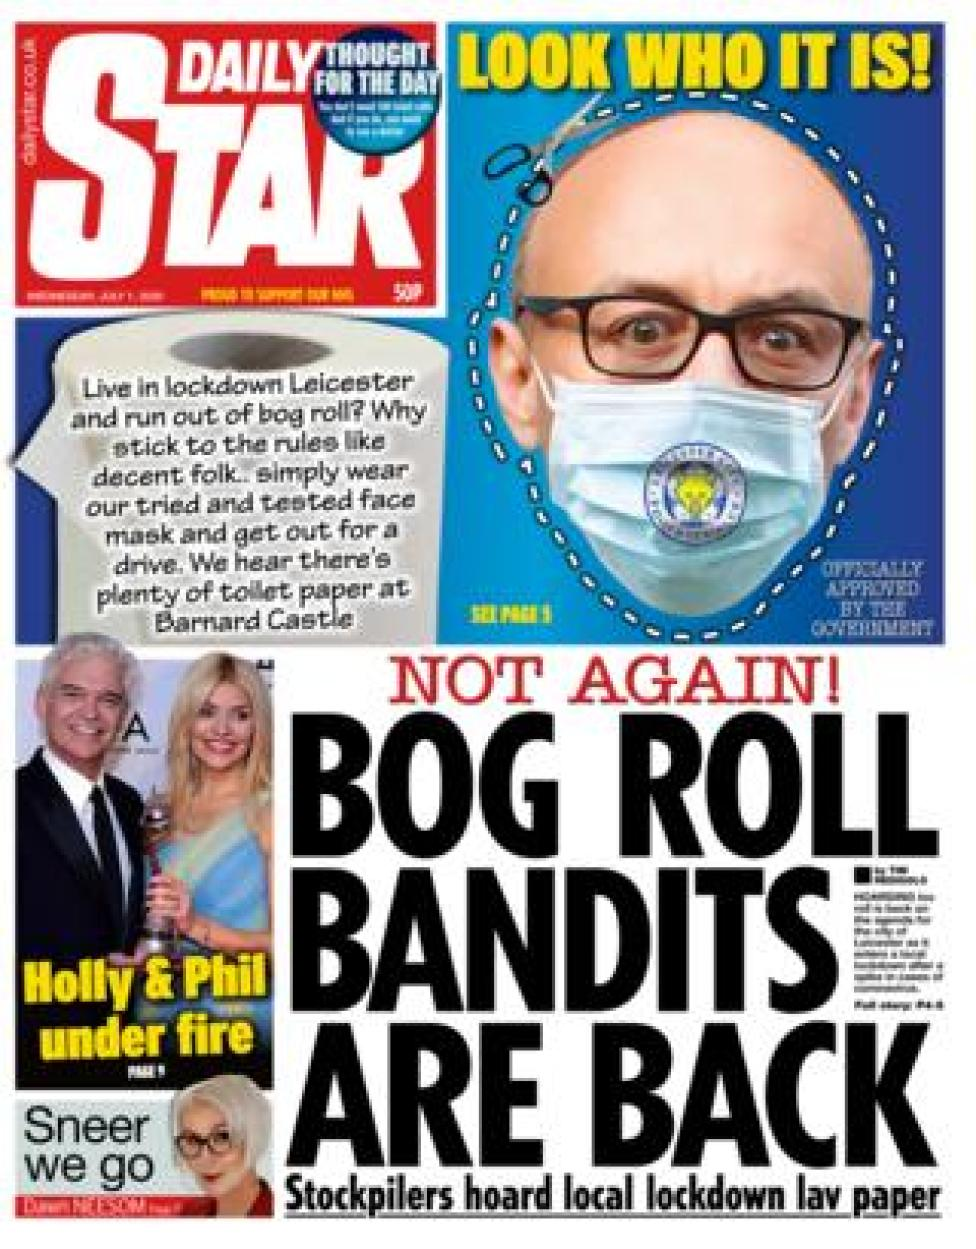 Daily Star front page 01.07.20